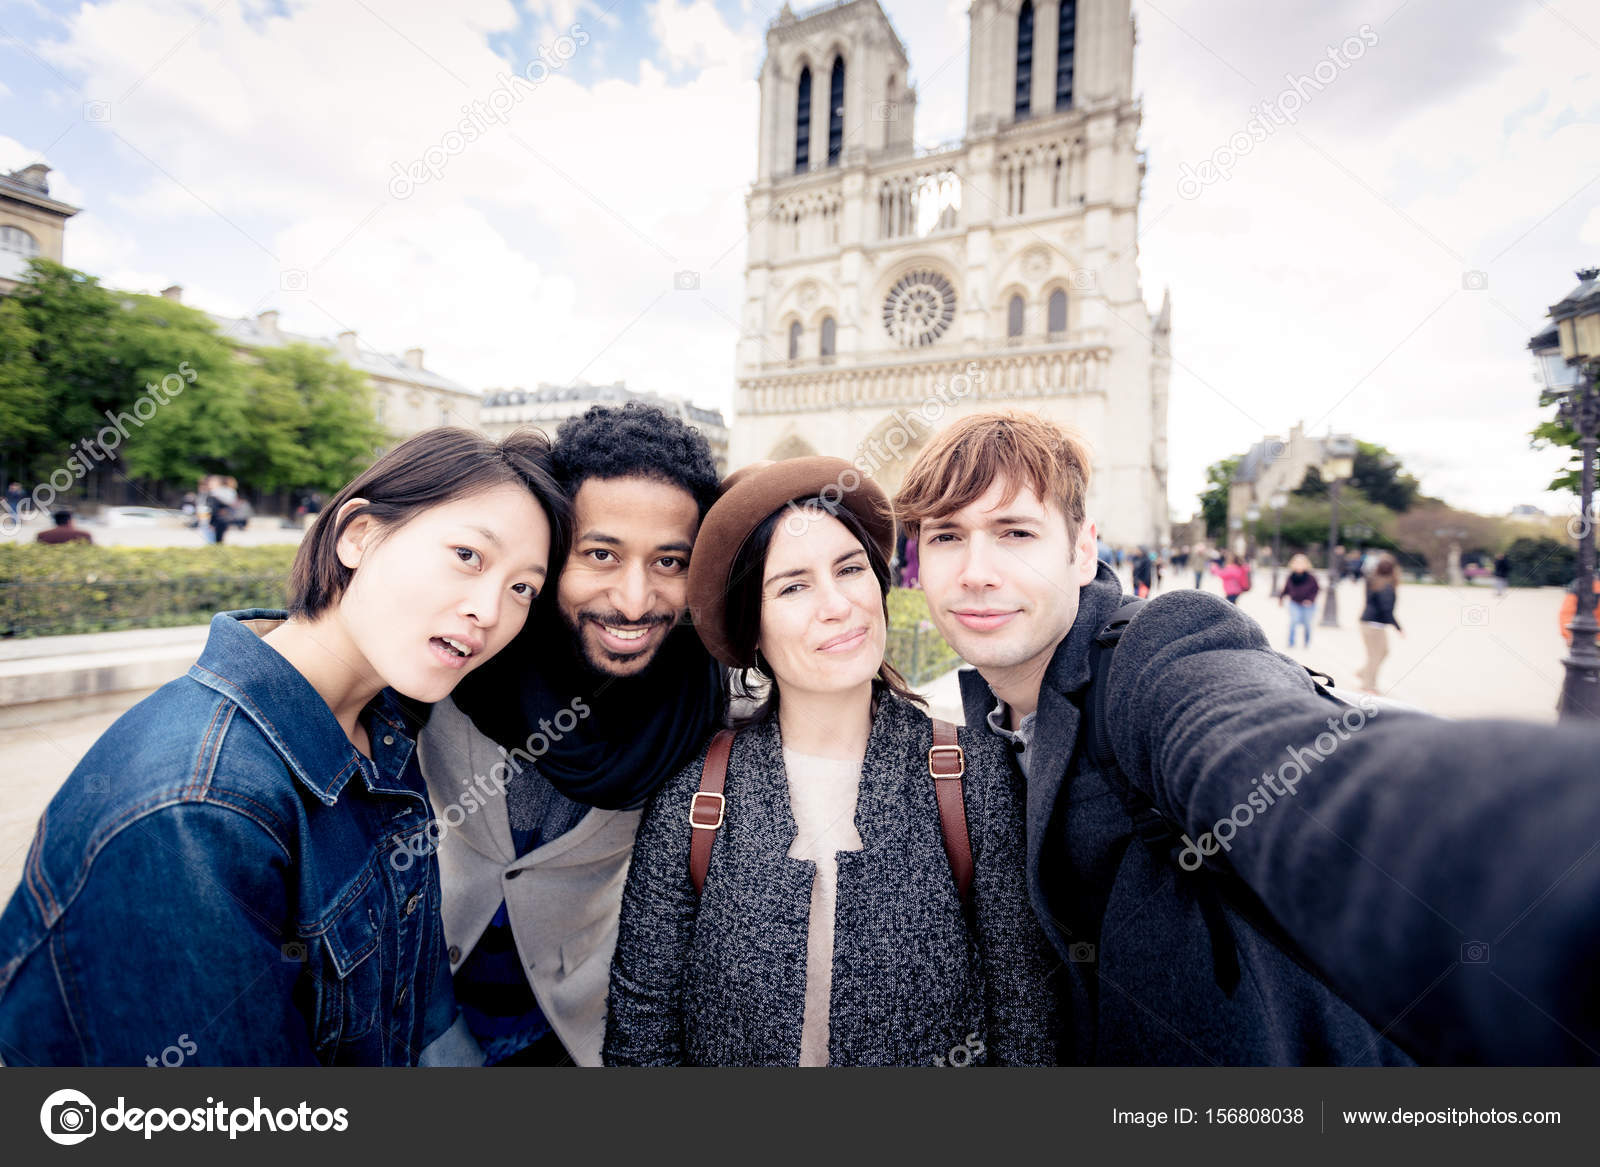 depositphotos_156808038-stock-photo-multi-ethnic-group-of-friends.jpg